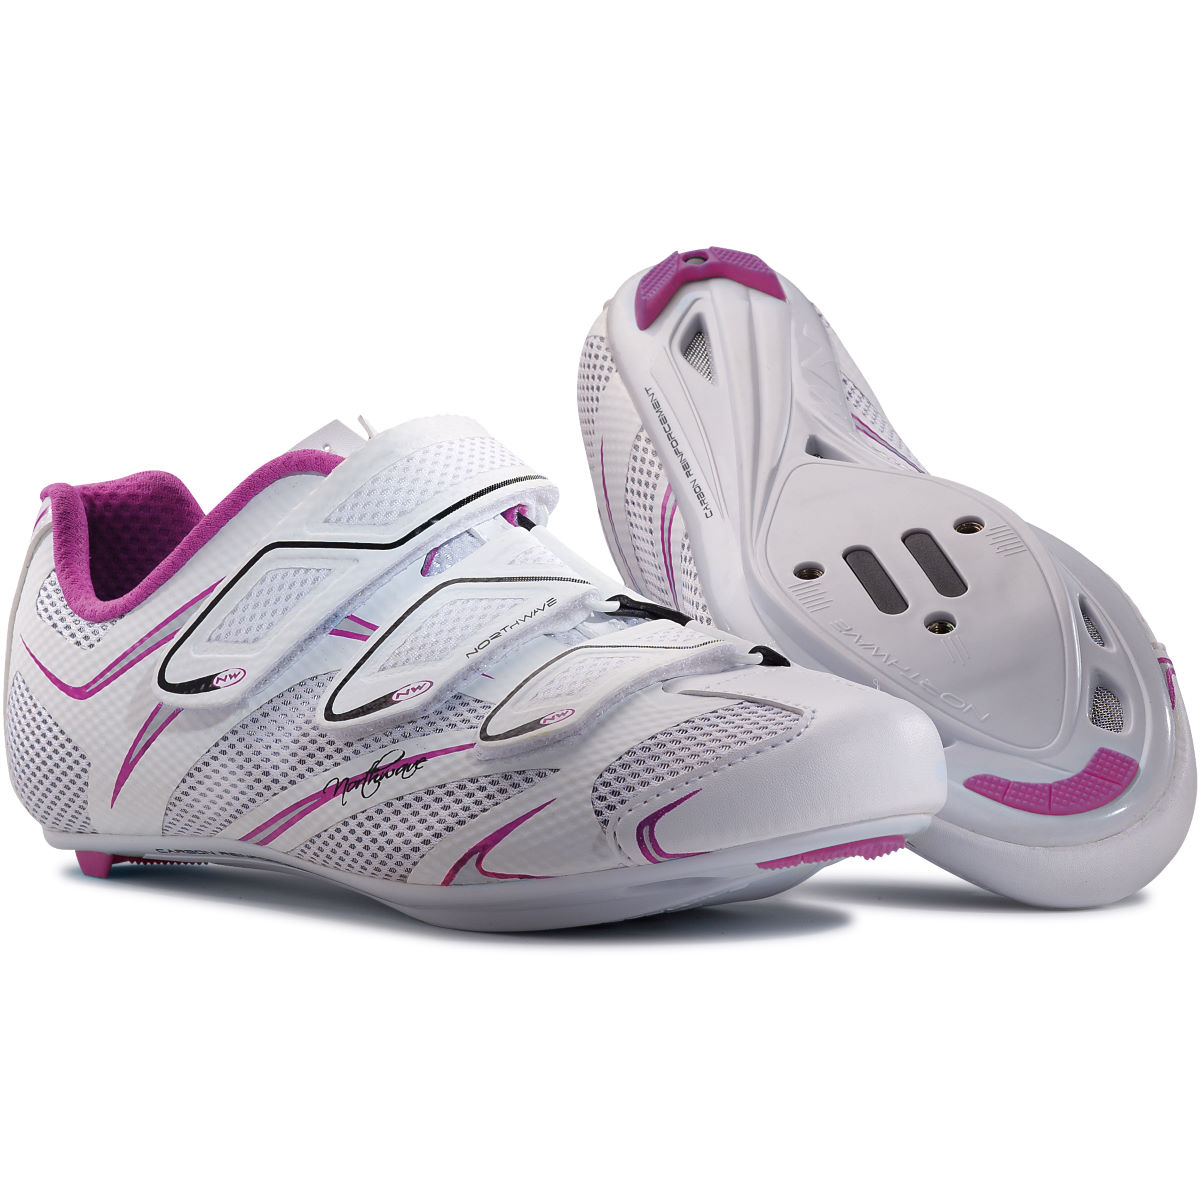 Northwave Womens Starlight 3S Road Shoes (WhitePurple)   Road Shoes